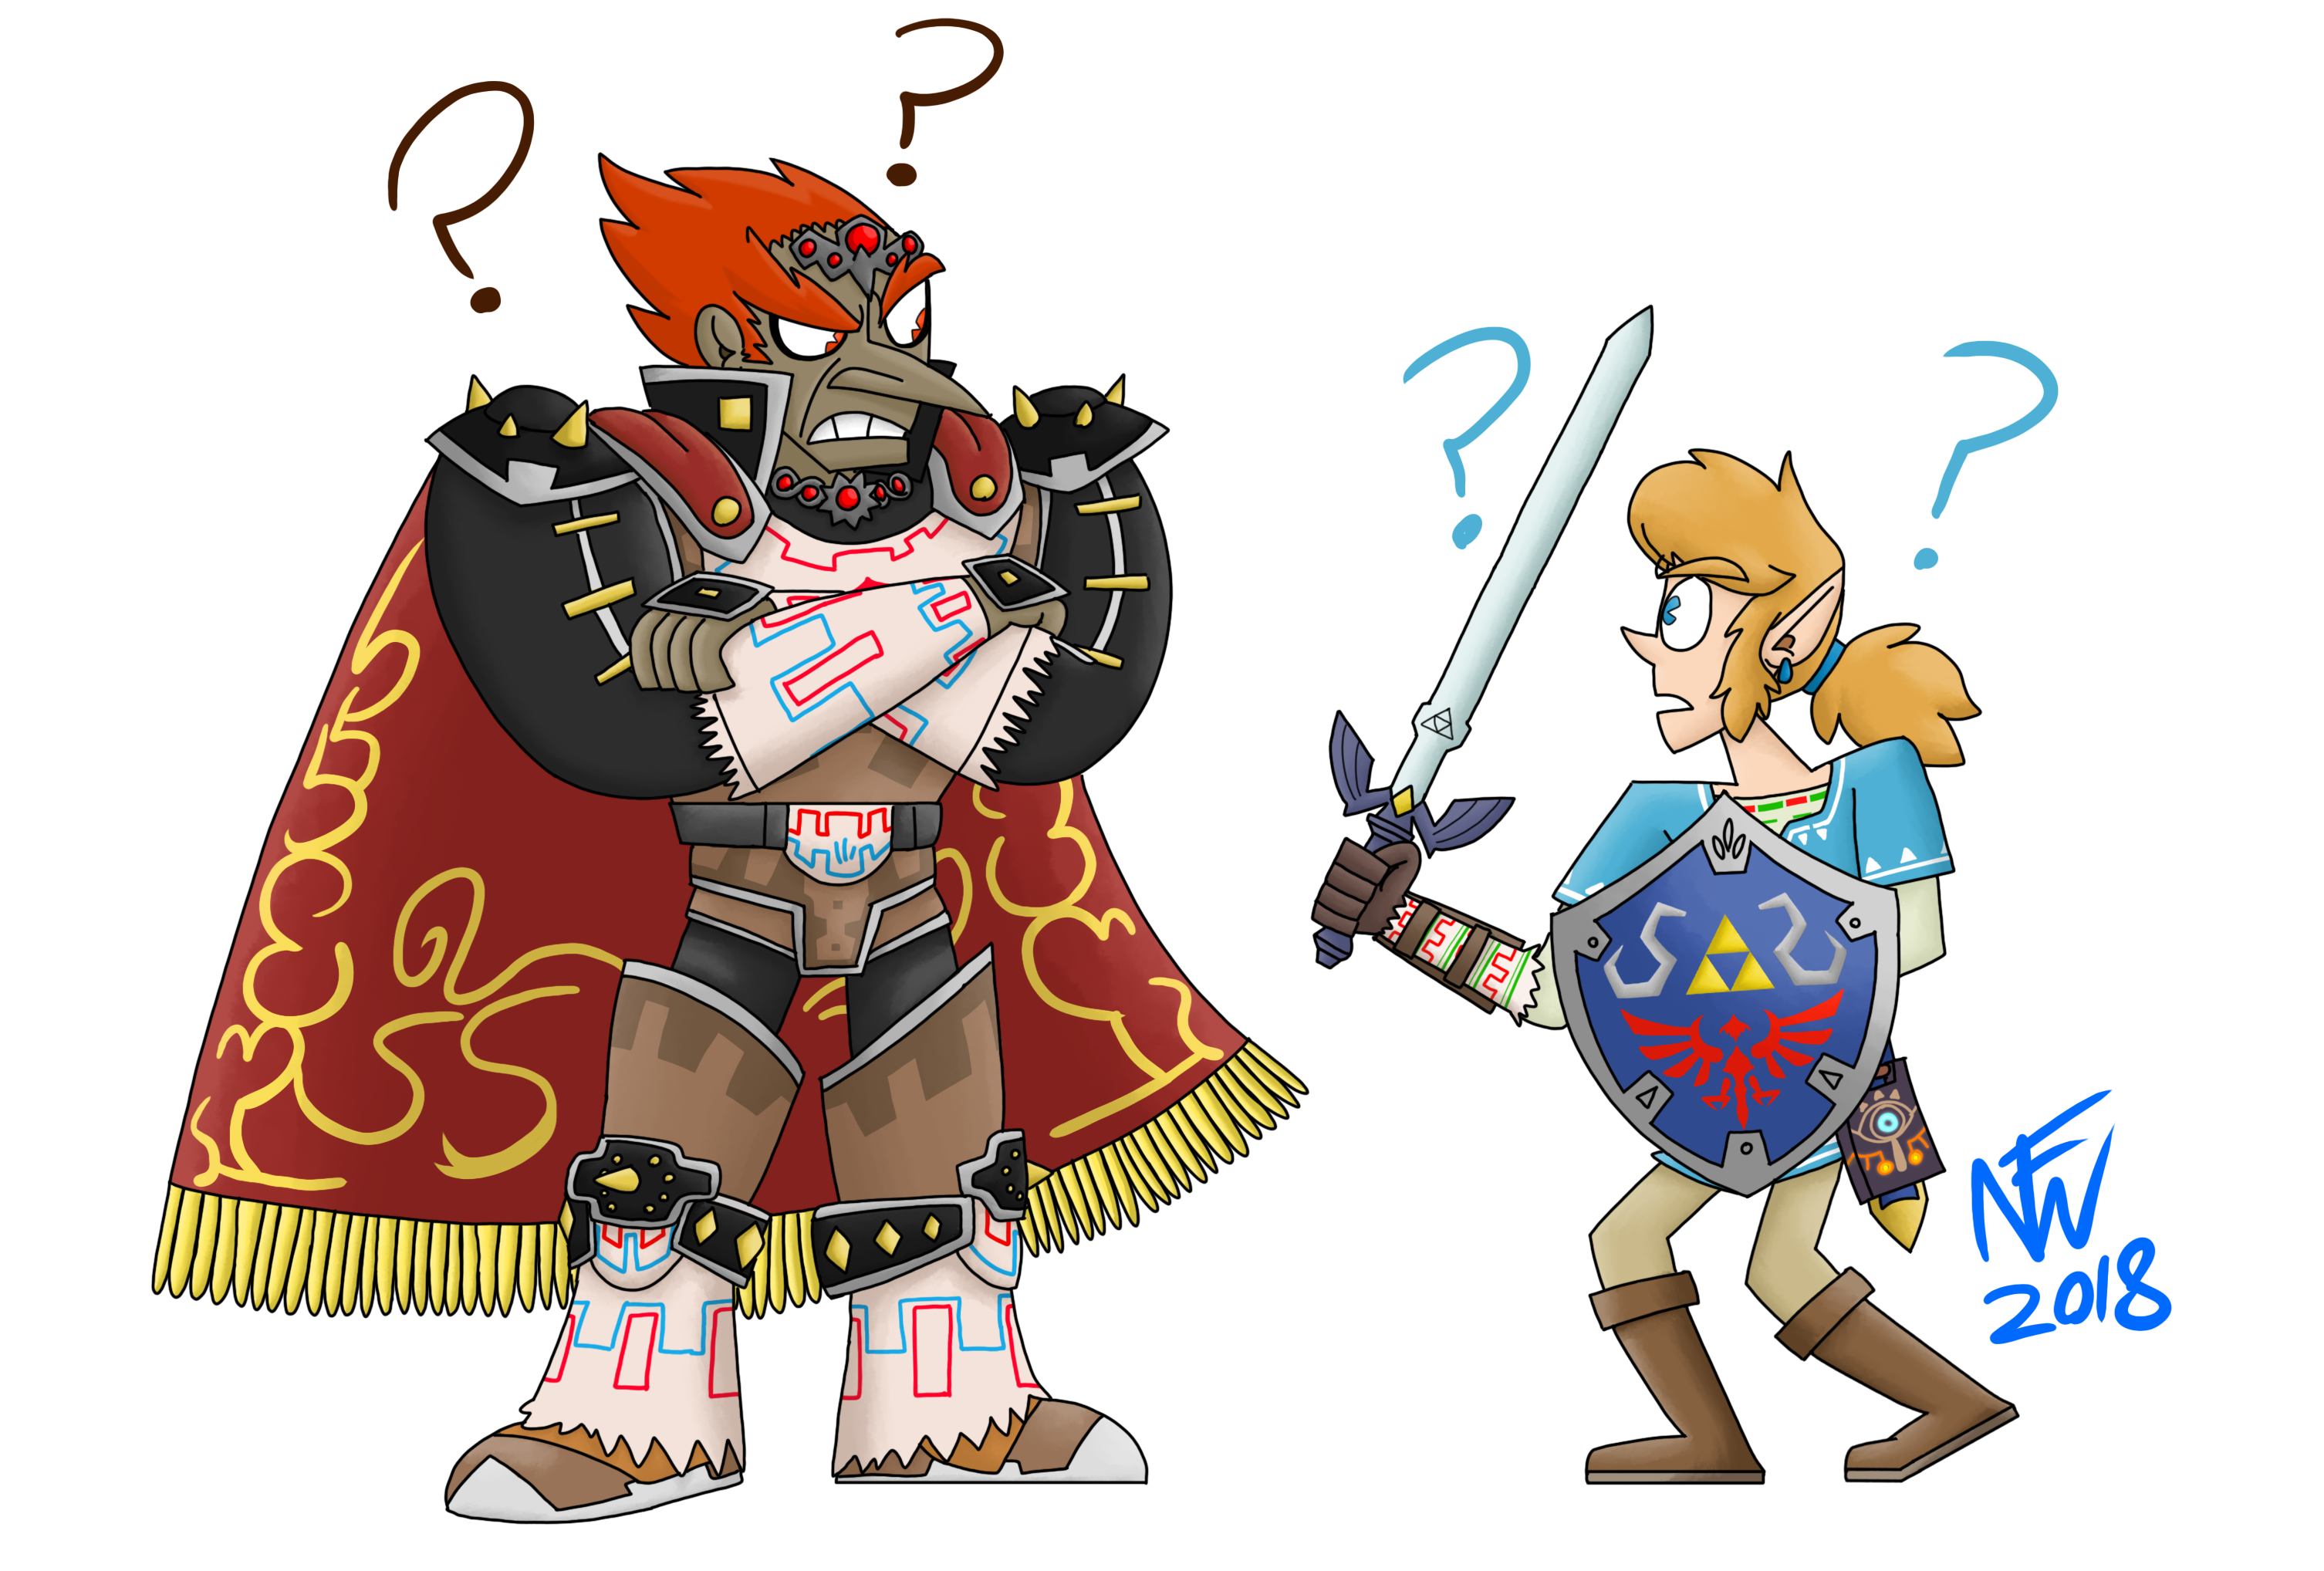 Ganondorf And Link Meet In Smash Bros Ultimate By Noah